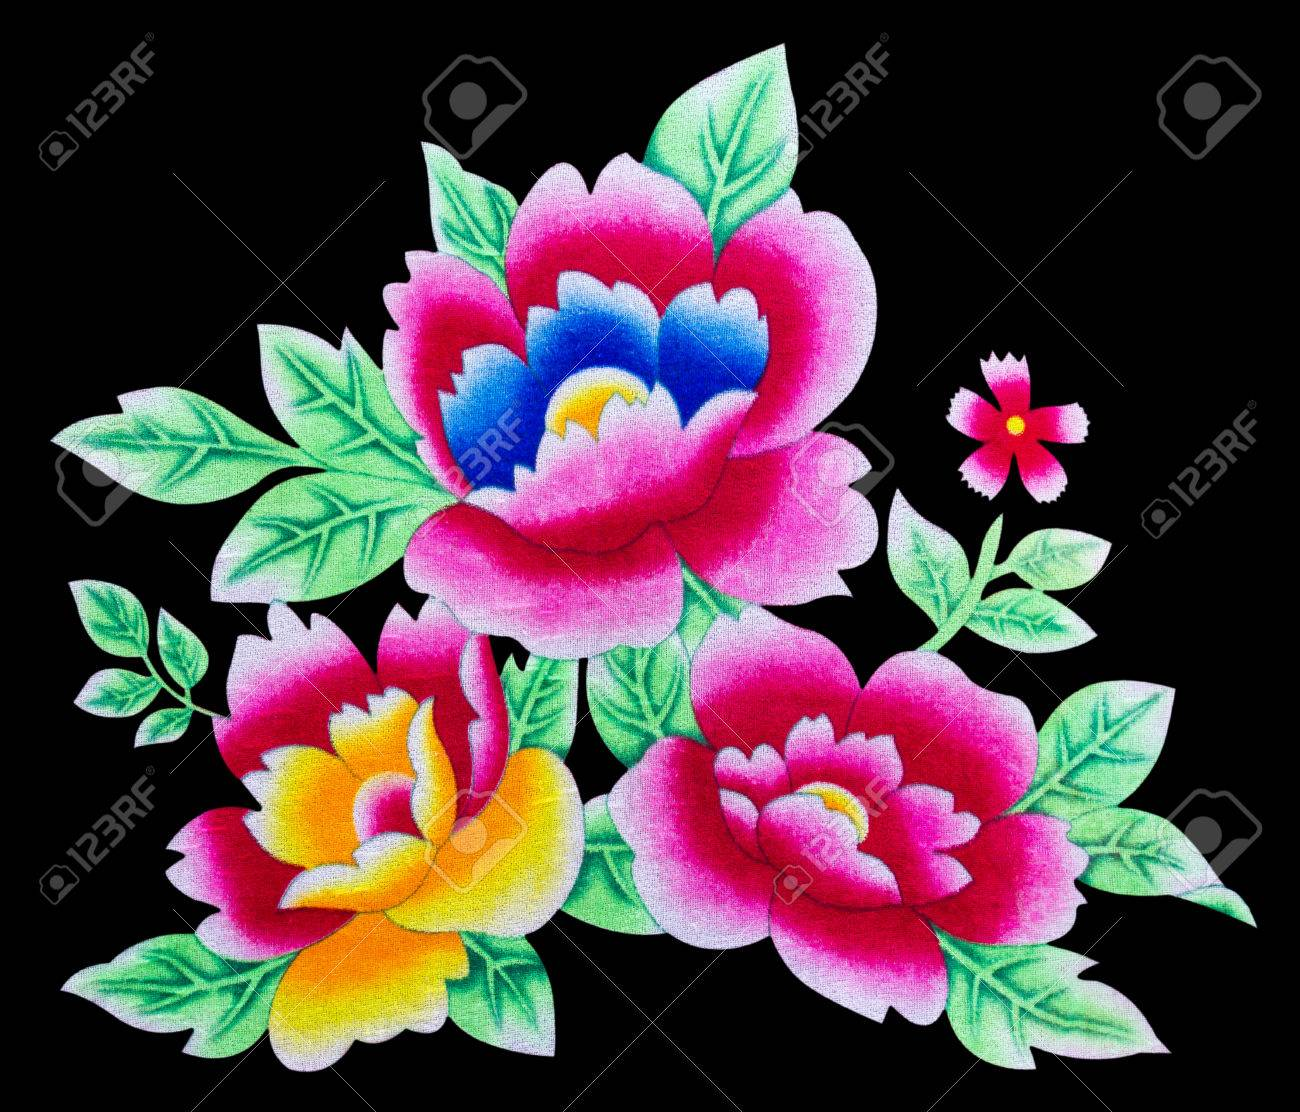 Isolates of beautiful flowers painted on the surface of the fabric isolates of beautiful flowers painted on the surface of the fabric stock photo 25866898 izmirmasajfo